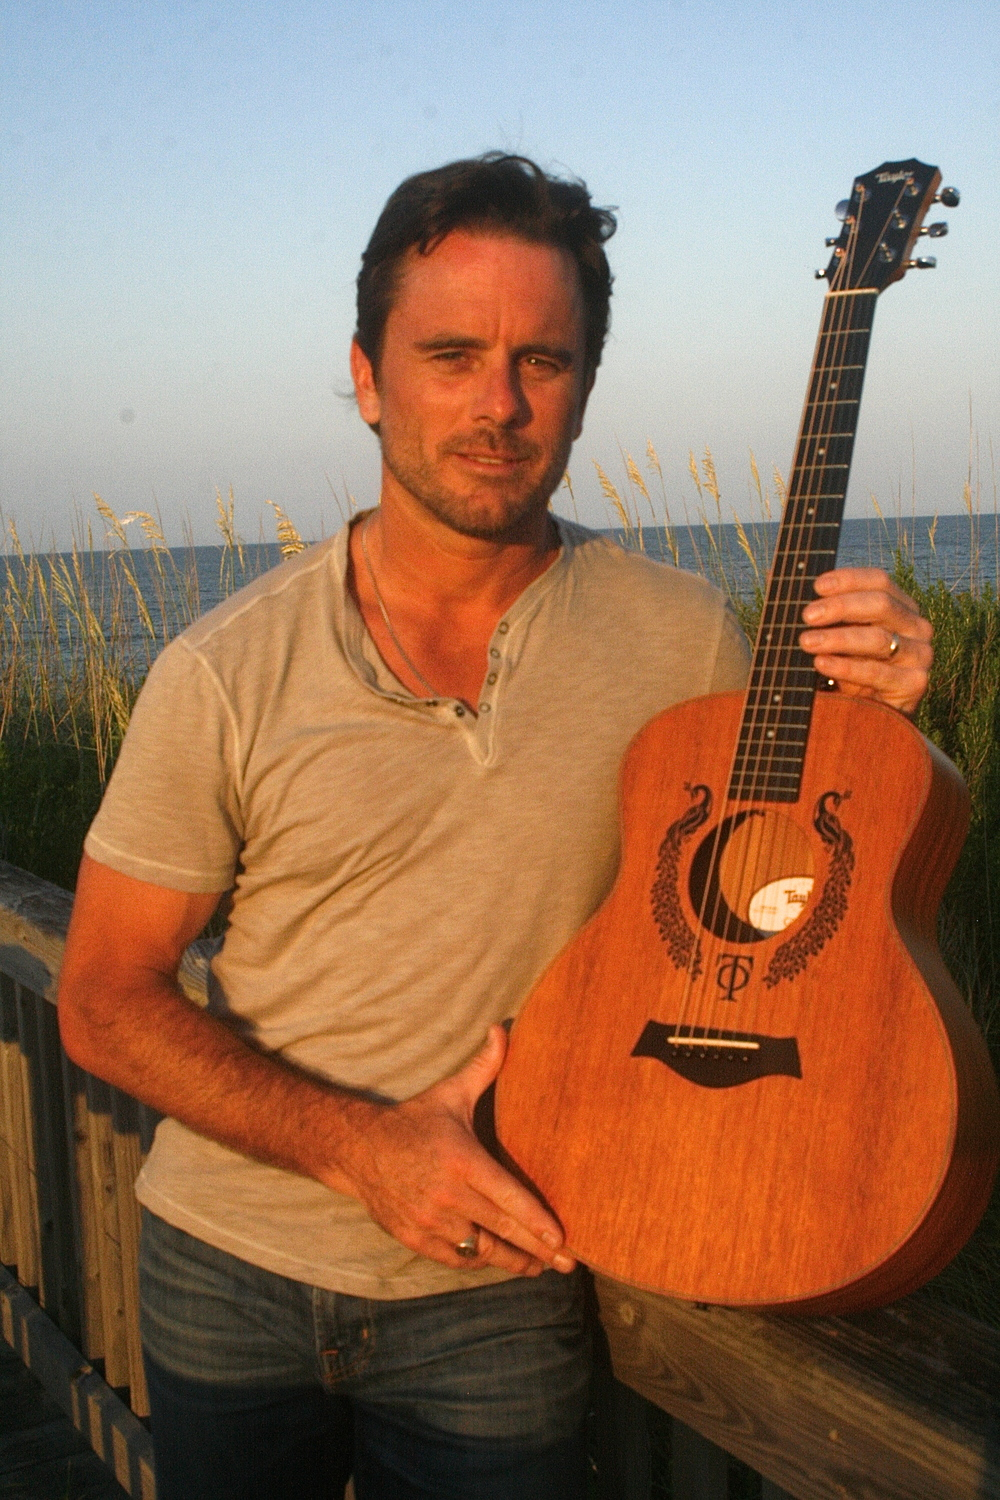 Chip Esten from ABC's Nashville